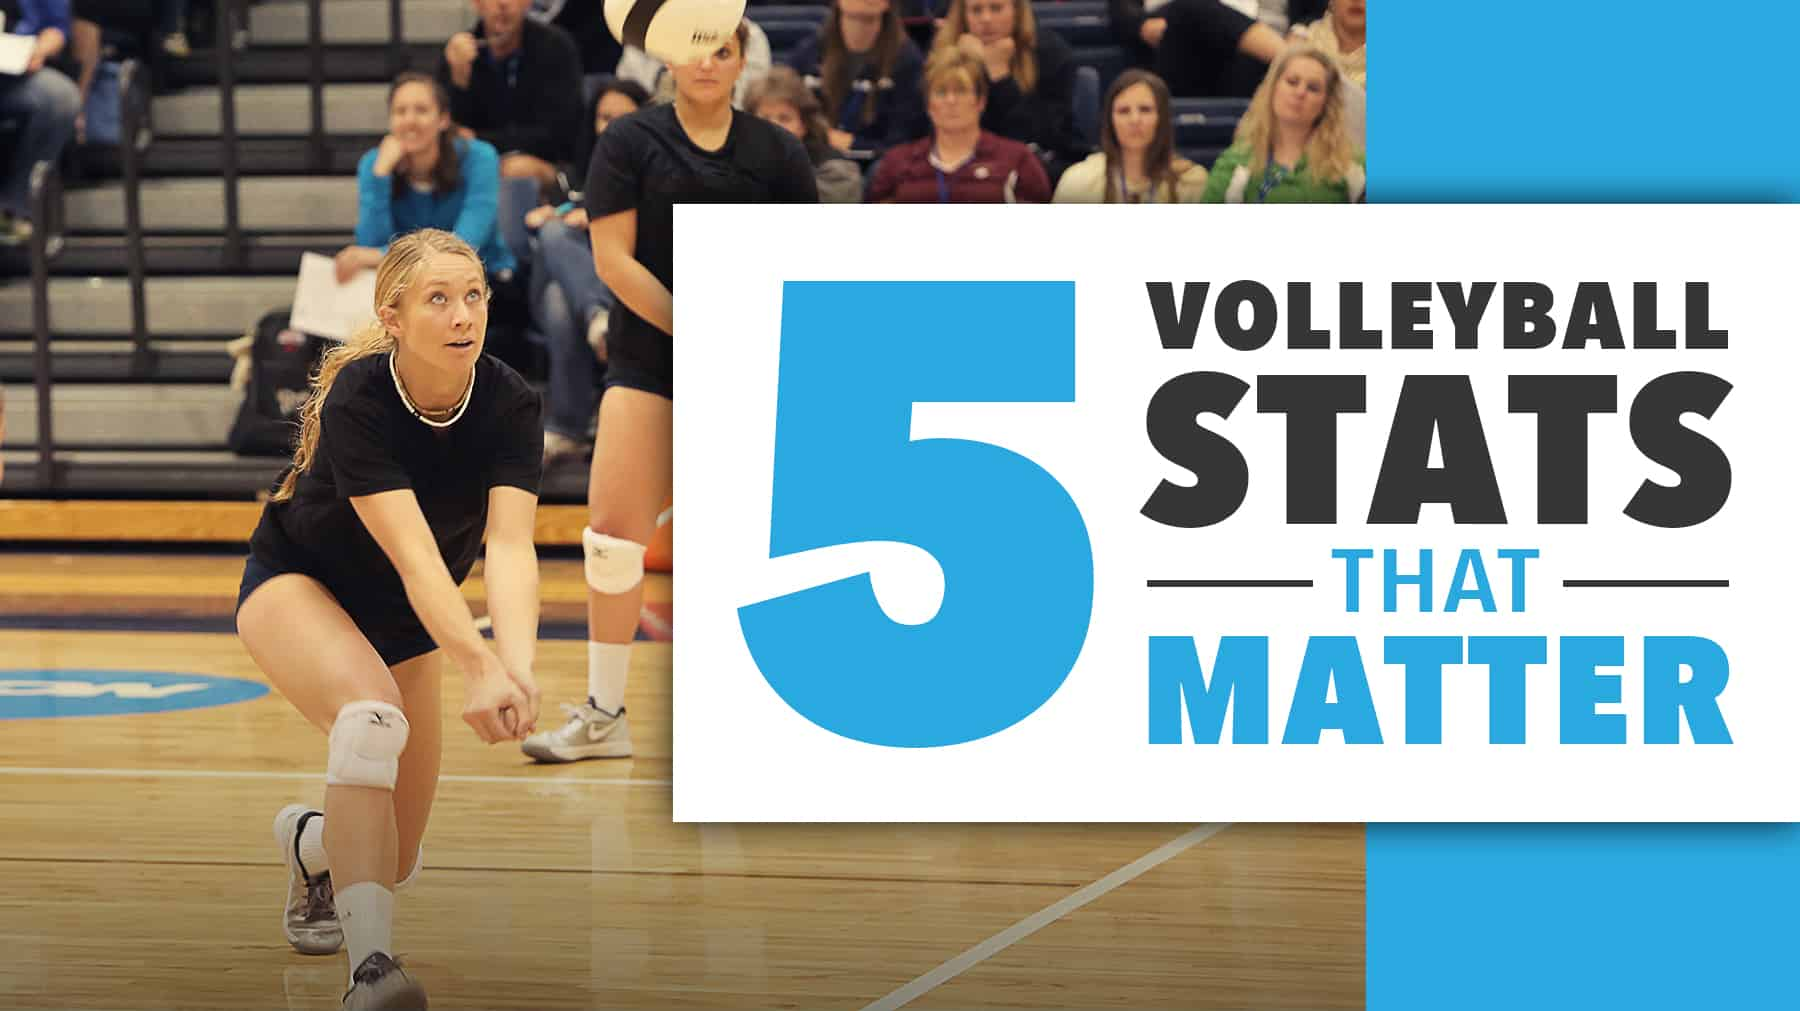 5 Volleyball Stats That Make A Difference